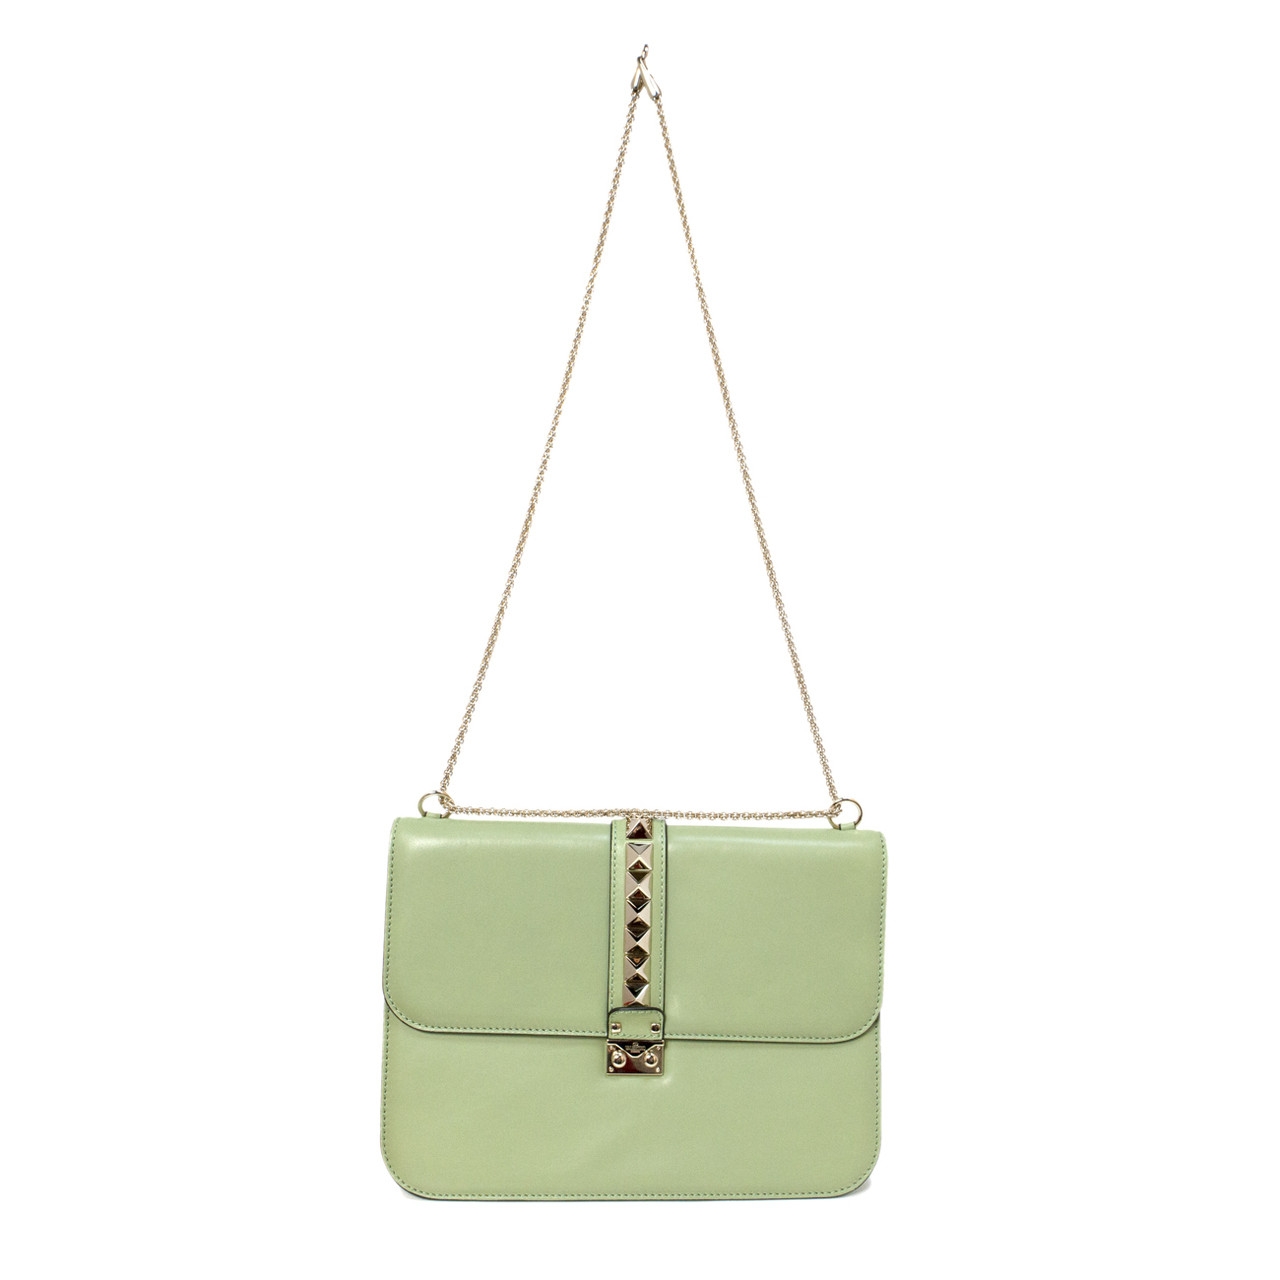 07d8d1a15 Valentino Mint Green Large Glam Lock Rockstud Flap Bag - modaselle